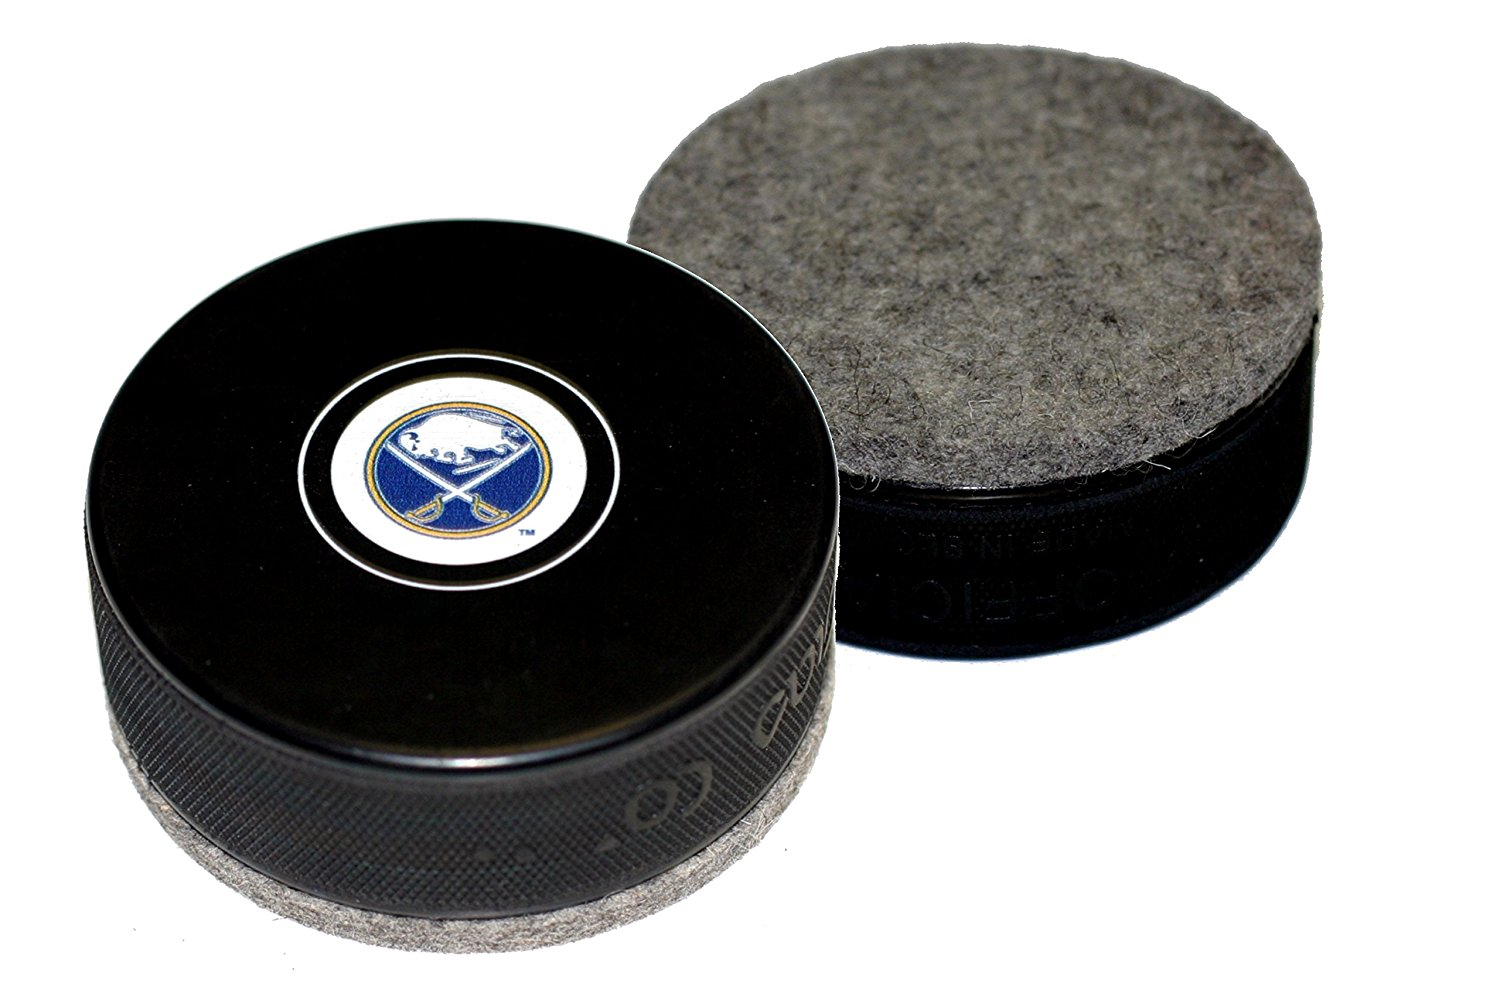 Cheap lighted hockey puck find lighted hockey puck deals on line at get quotations buffalo sabres hockey puck board eraser for chalk boards and whiteboards mozeypictures Choice Image